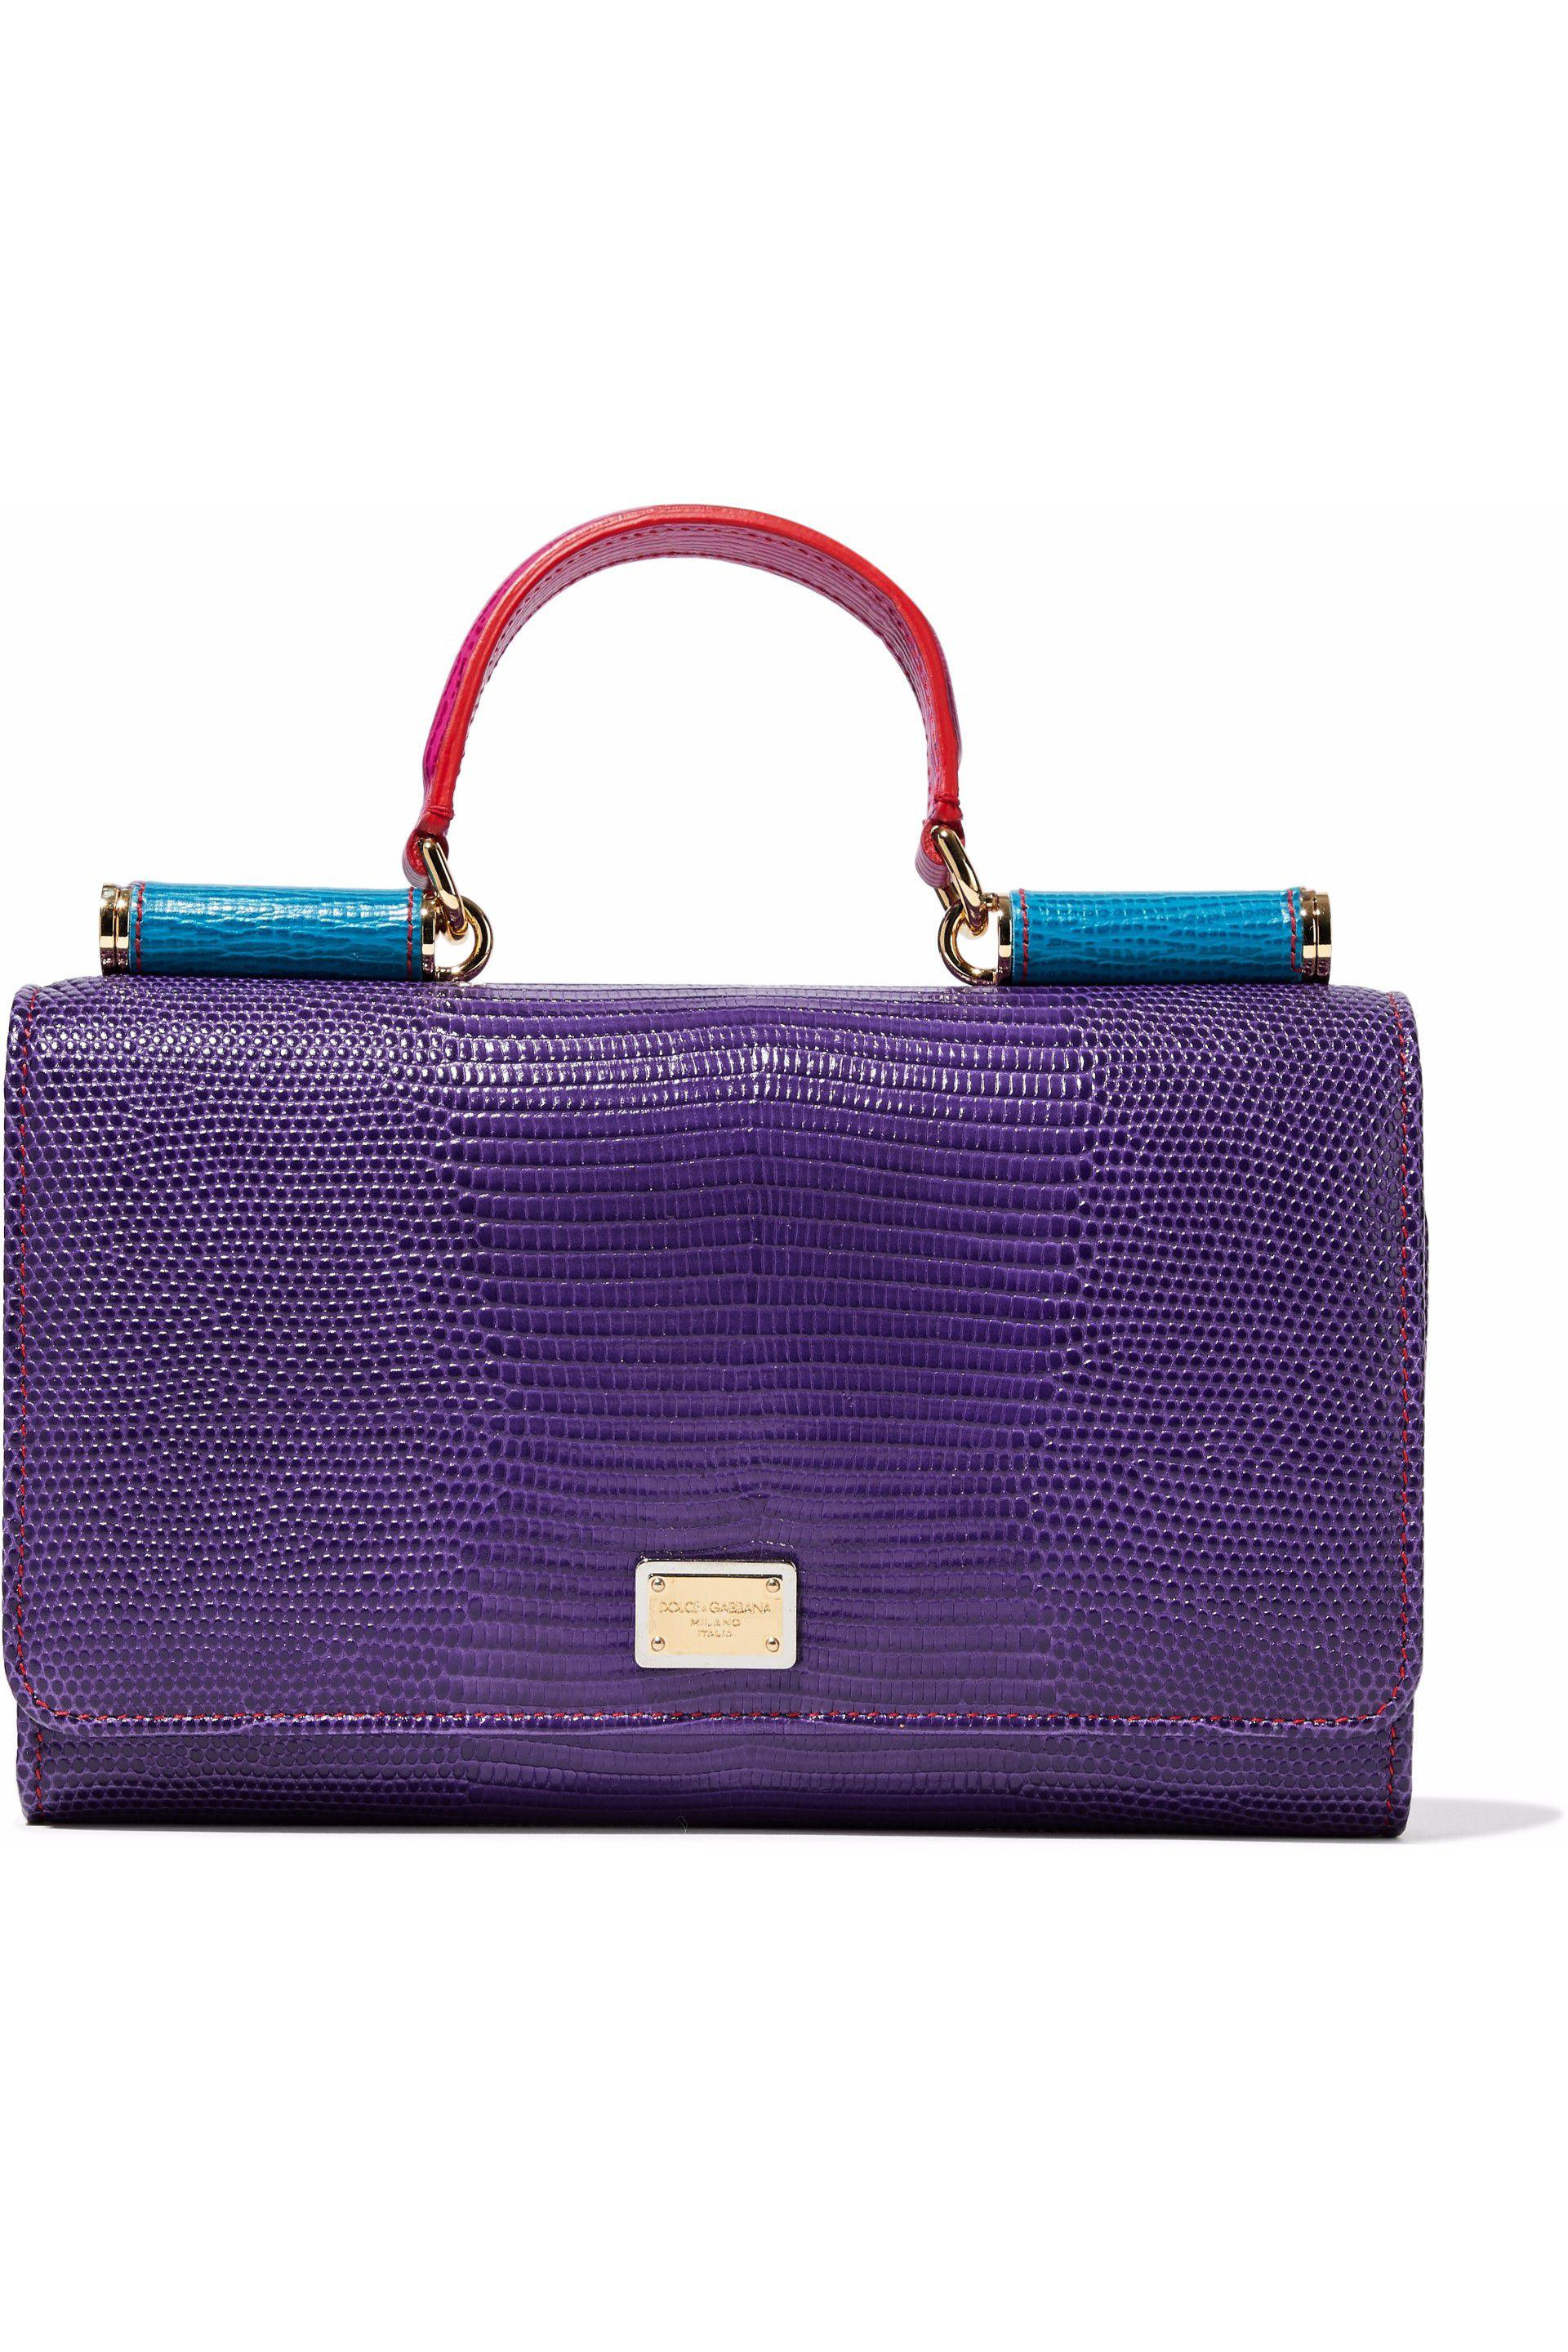 Lyst - Dolce   Gabbana Color-block Textured-leather Phone Case in Purple c2ceff86b1